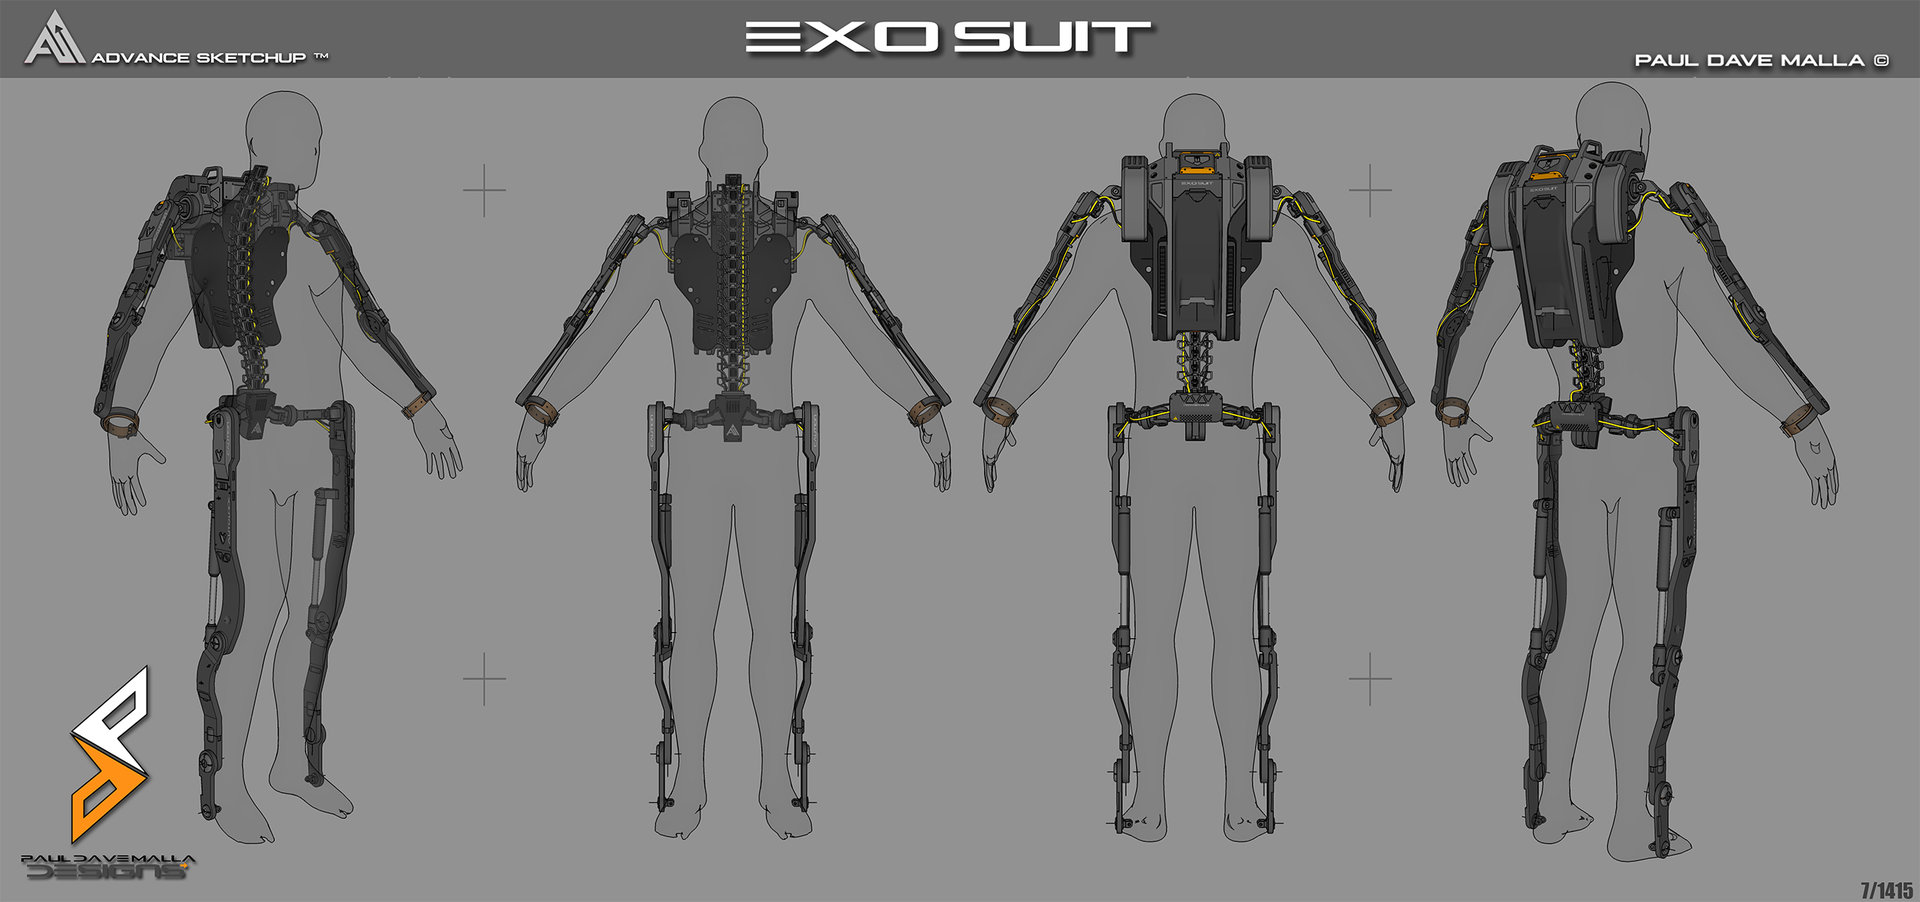 artstation exo suit project paul dave malla. Black Bedroom Furniture Sets. Home Design Ideas